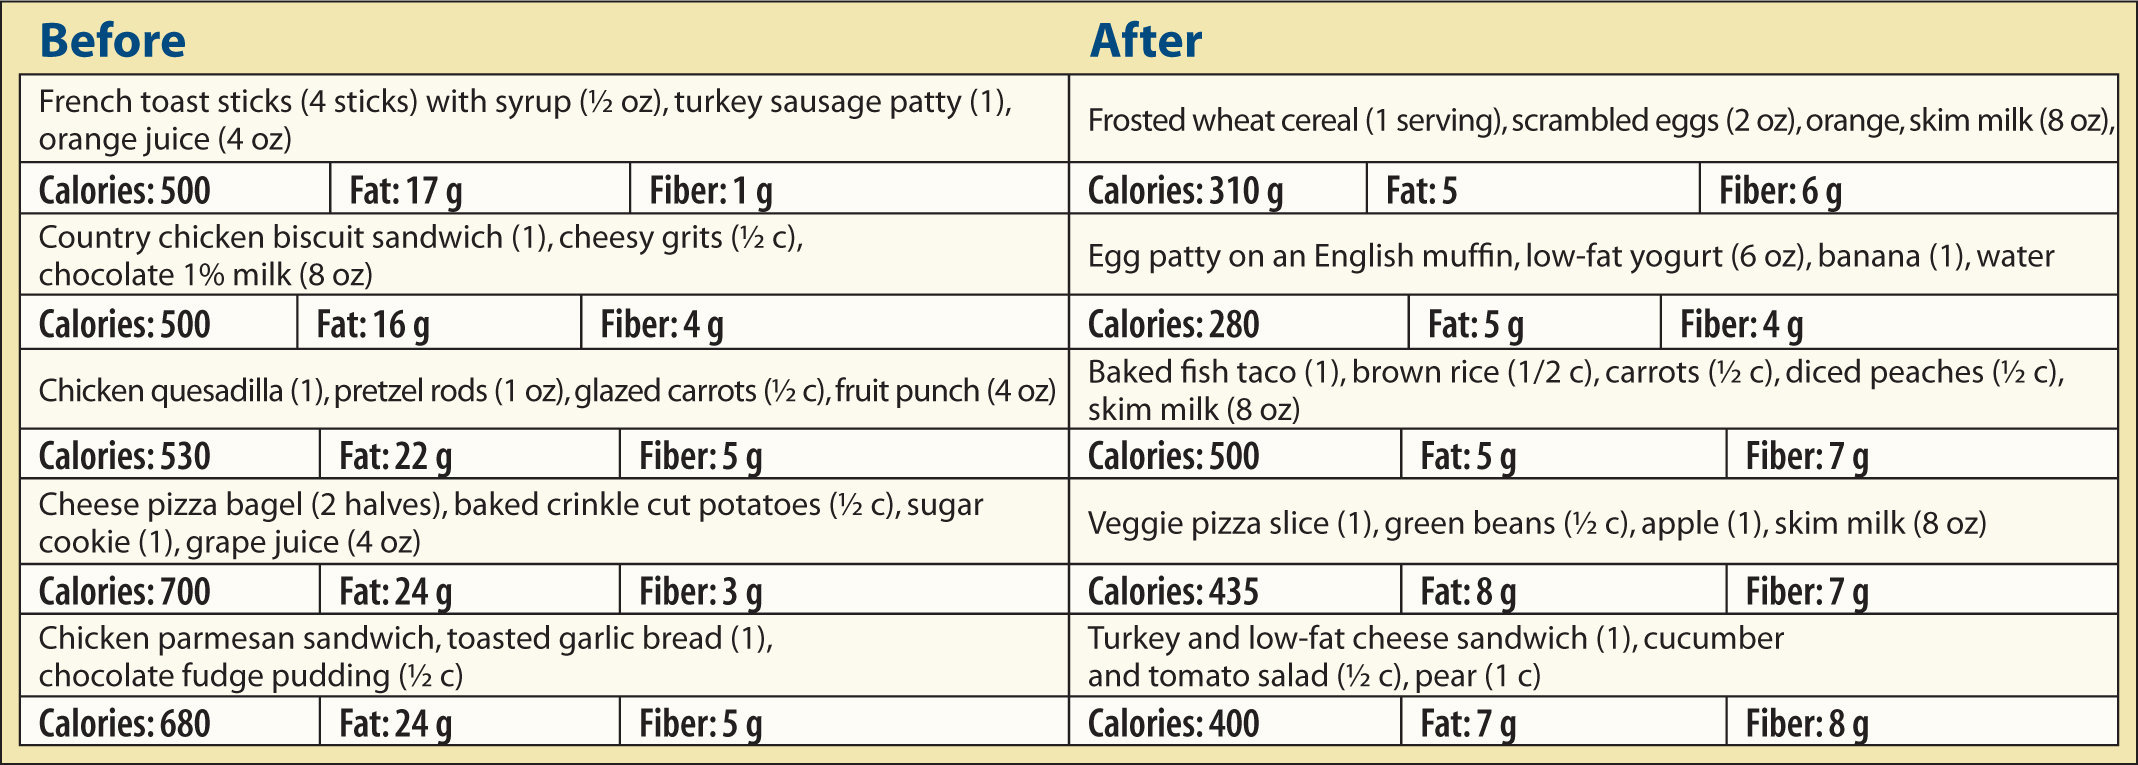 The serving sizes and food choices are taken from a list of foods served during the 2012 school year at a large metropolitan public school system. Nutritional information is based on foods found in the United States Department of Agriculture database and standardized recipes. Calories, fat, and fiber content have been rounded to an approximate value.Figure courtesy of Karin Testa Ballard, MS, RD, LDN.